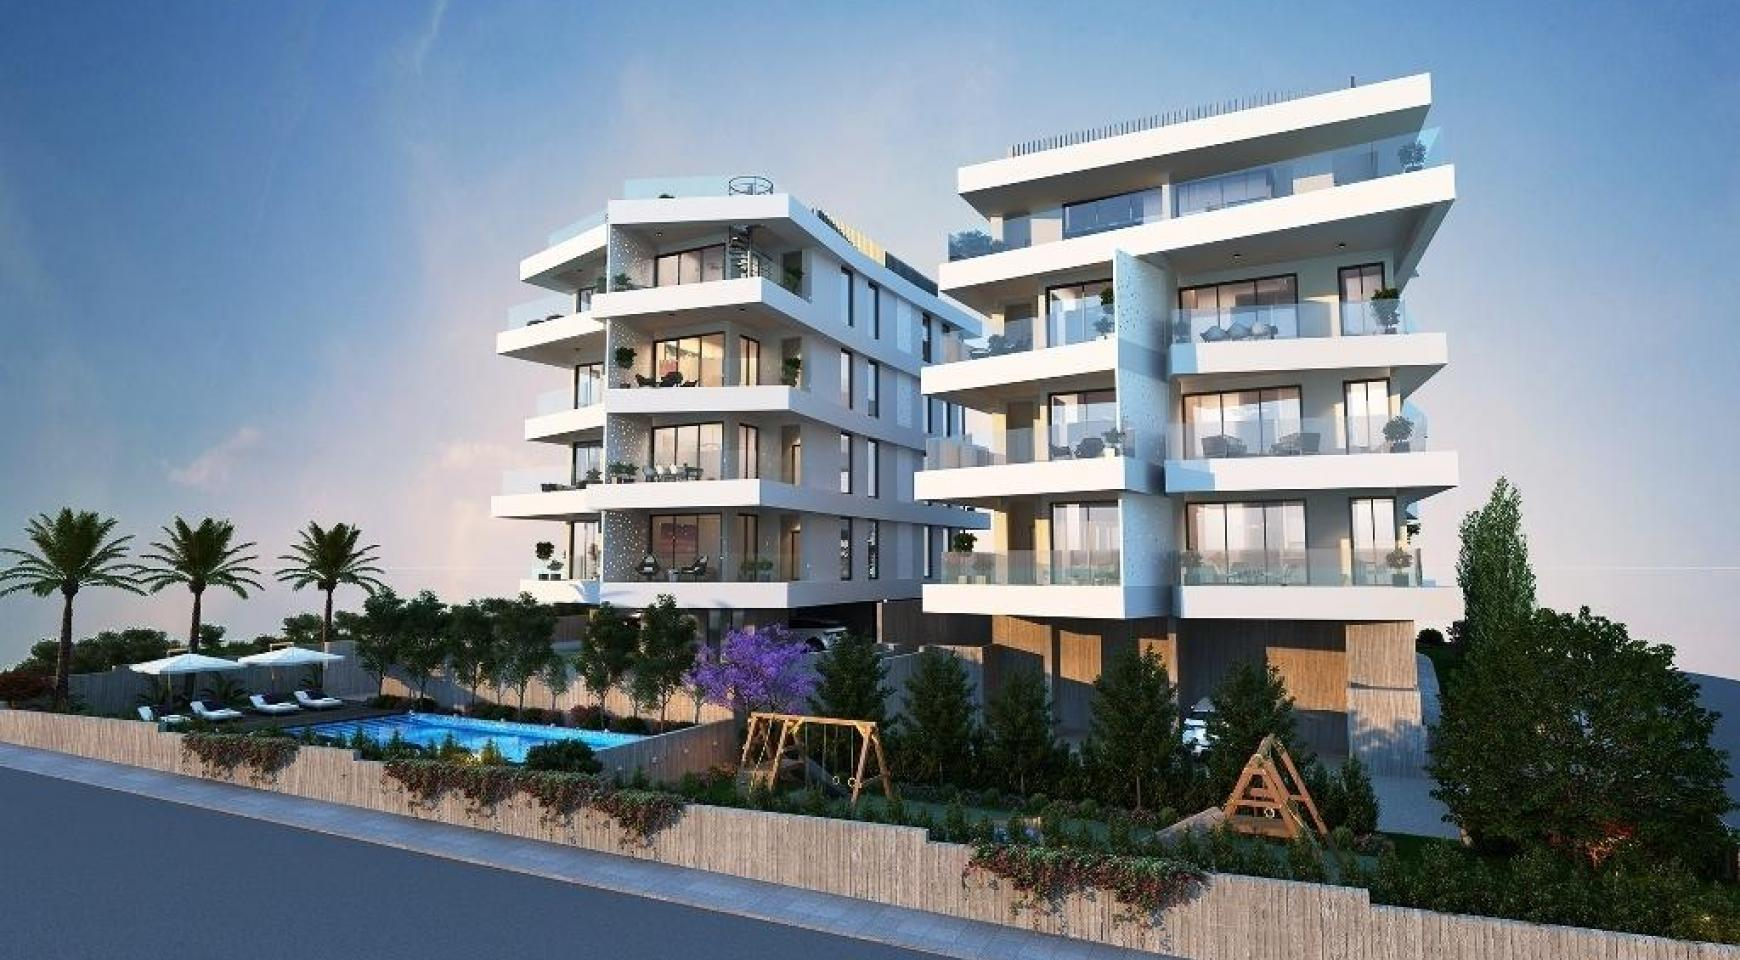 New 2 Bedroom Apartment in a Contemporary Building in Germasogeia Area - 4